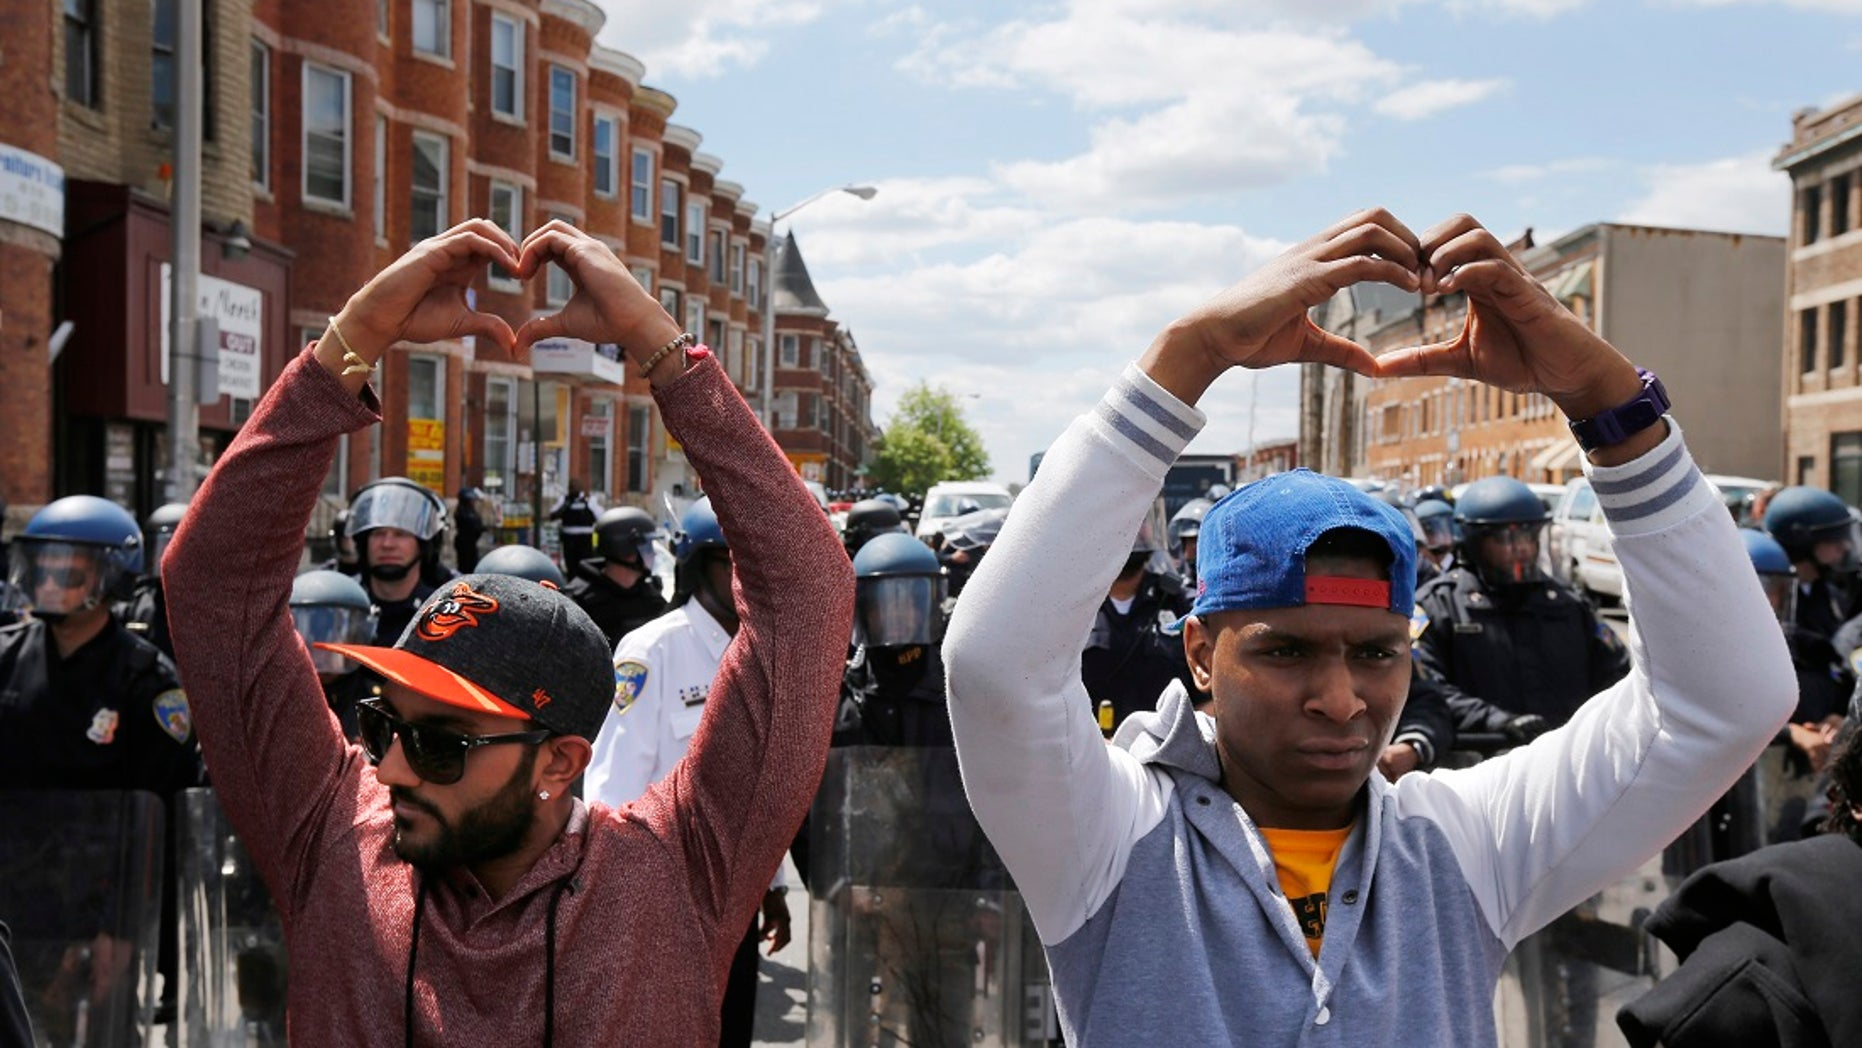 Members of the Baltimore community march in the street with police officers posted nearby.